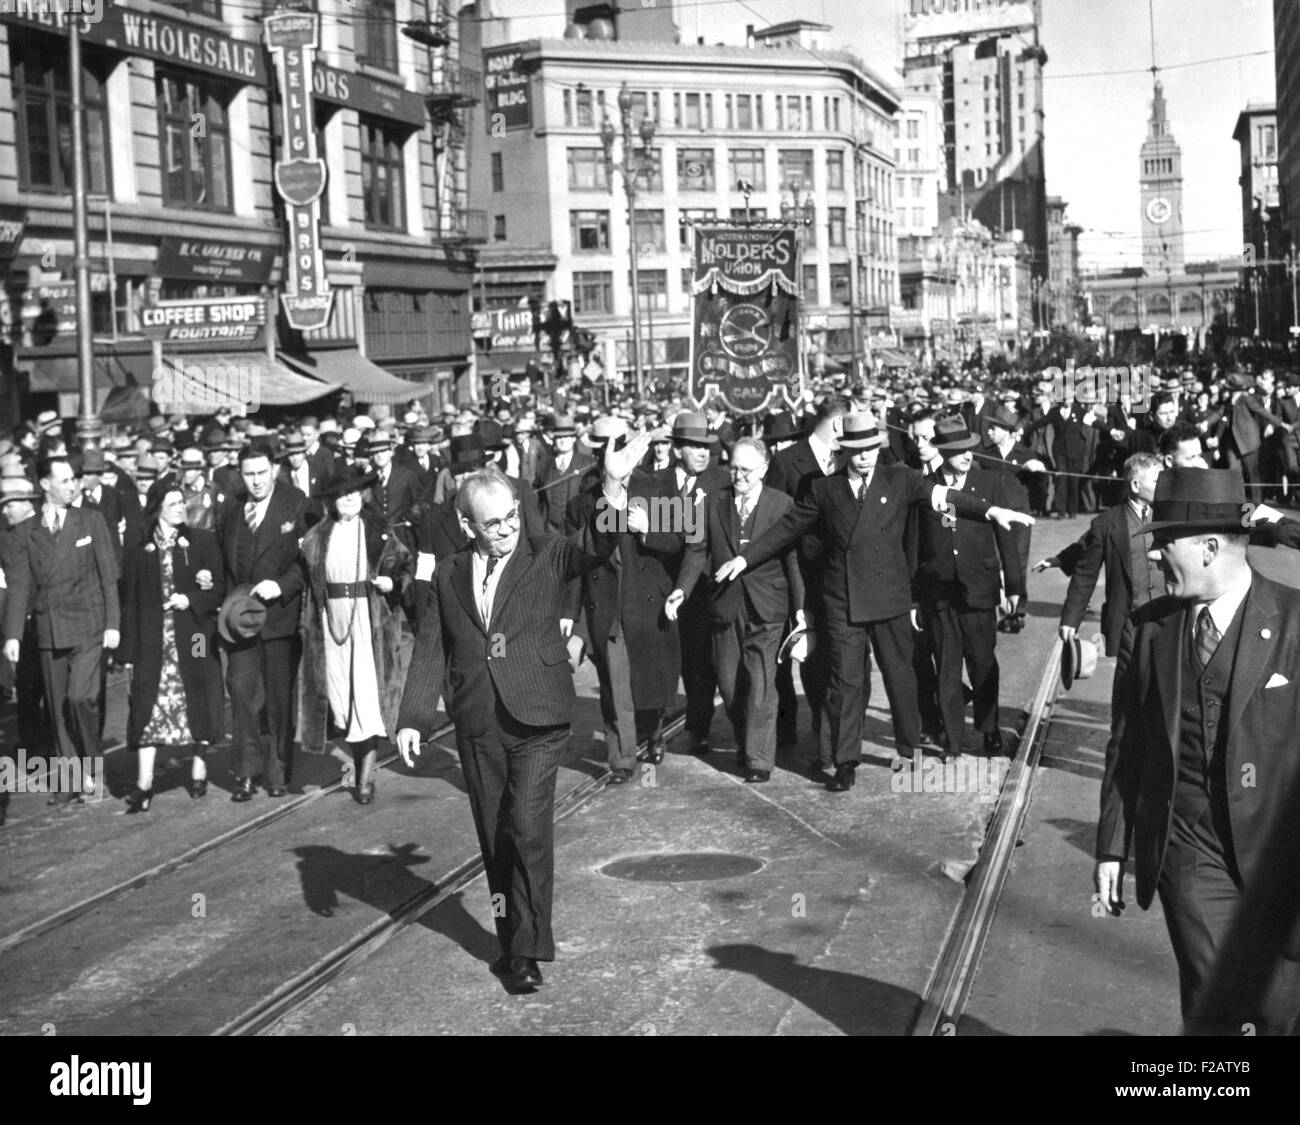 Tom Mooney, followed by 40,000 Unionists on Market St., San Francisco, Jan. 8, 1939. From extreme left is Harry - Stock Image